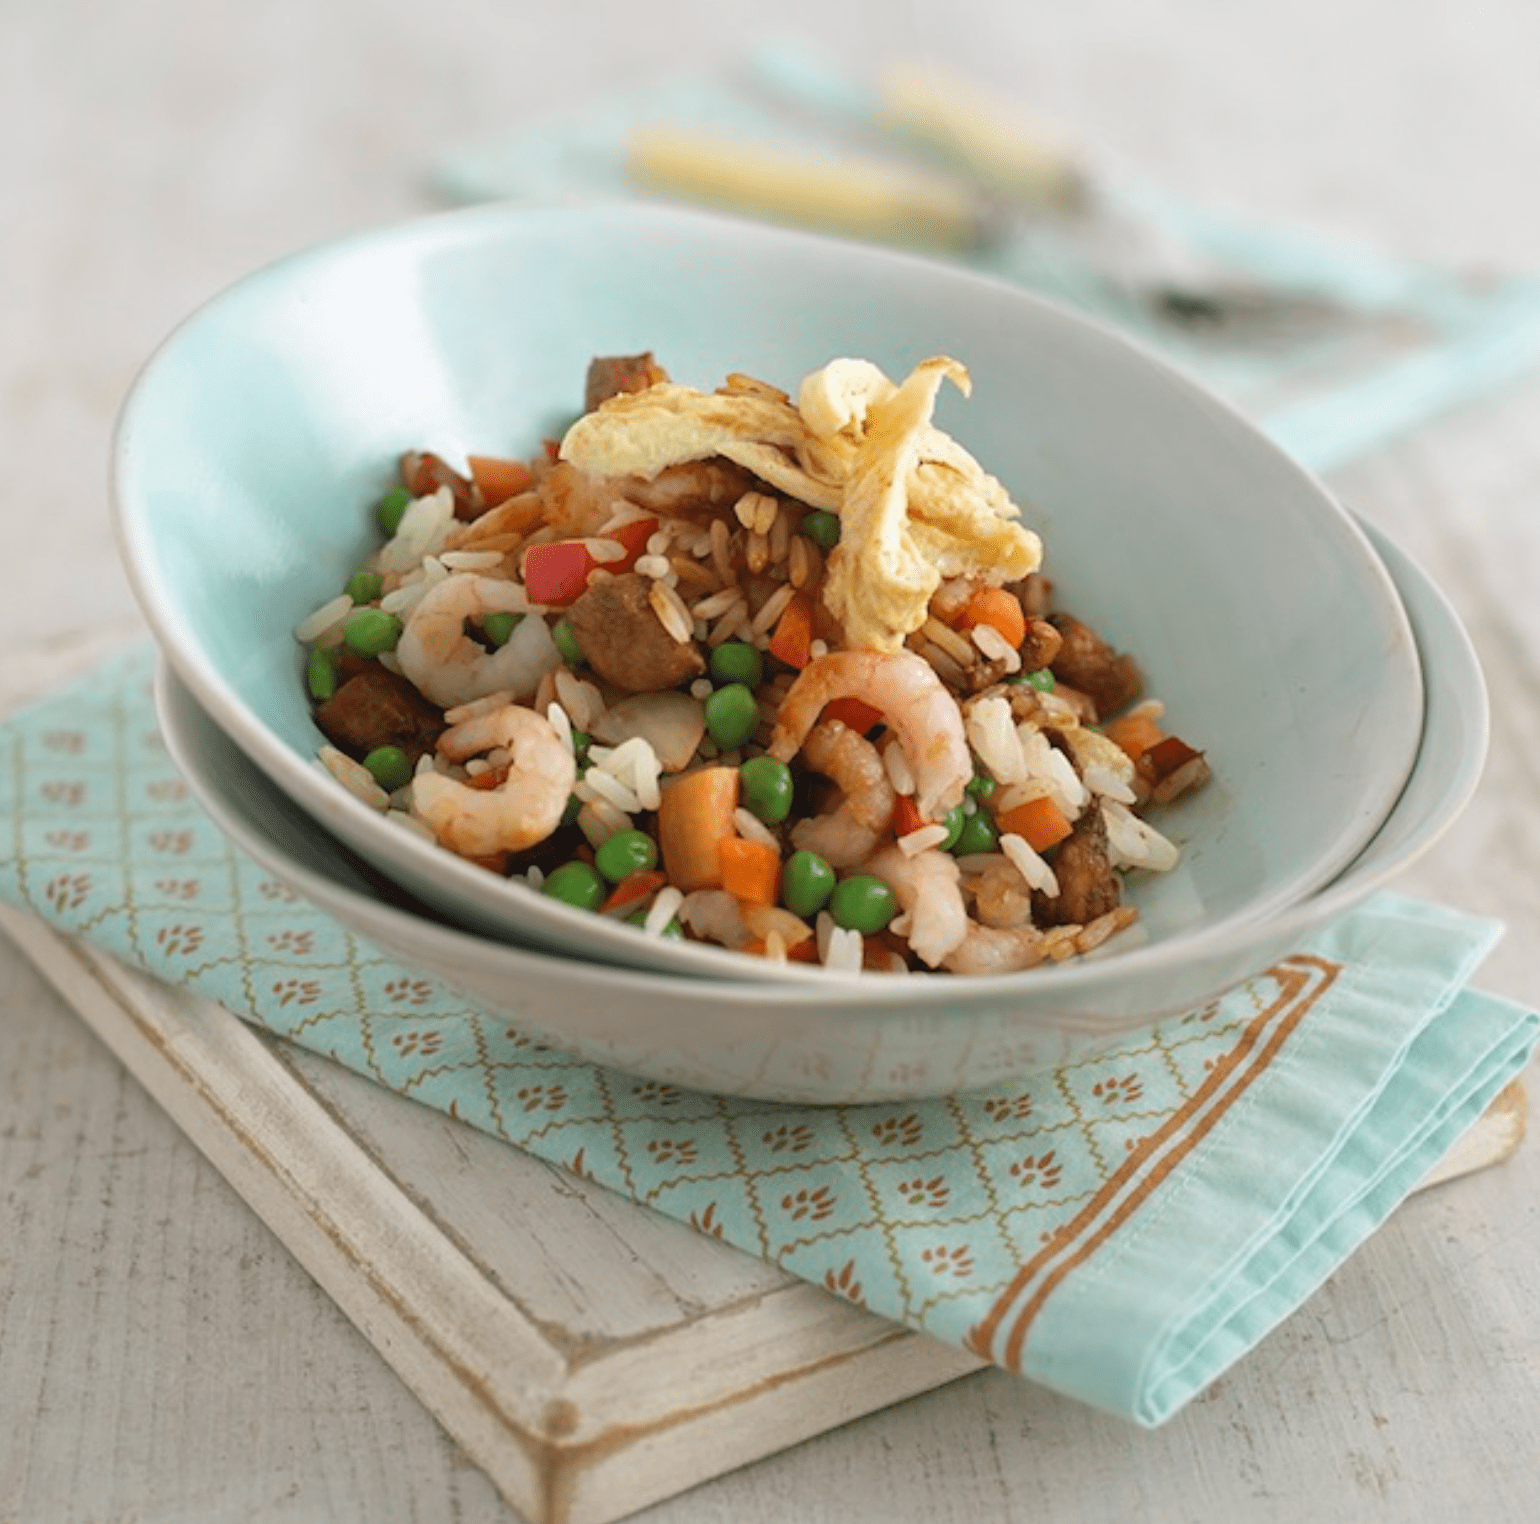 Cook Annabel Karmel's chicken fried rice with your child